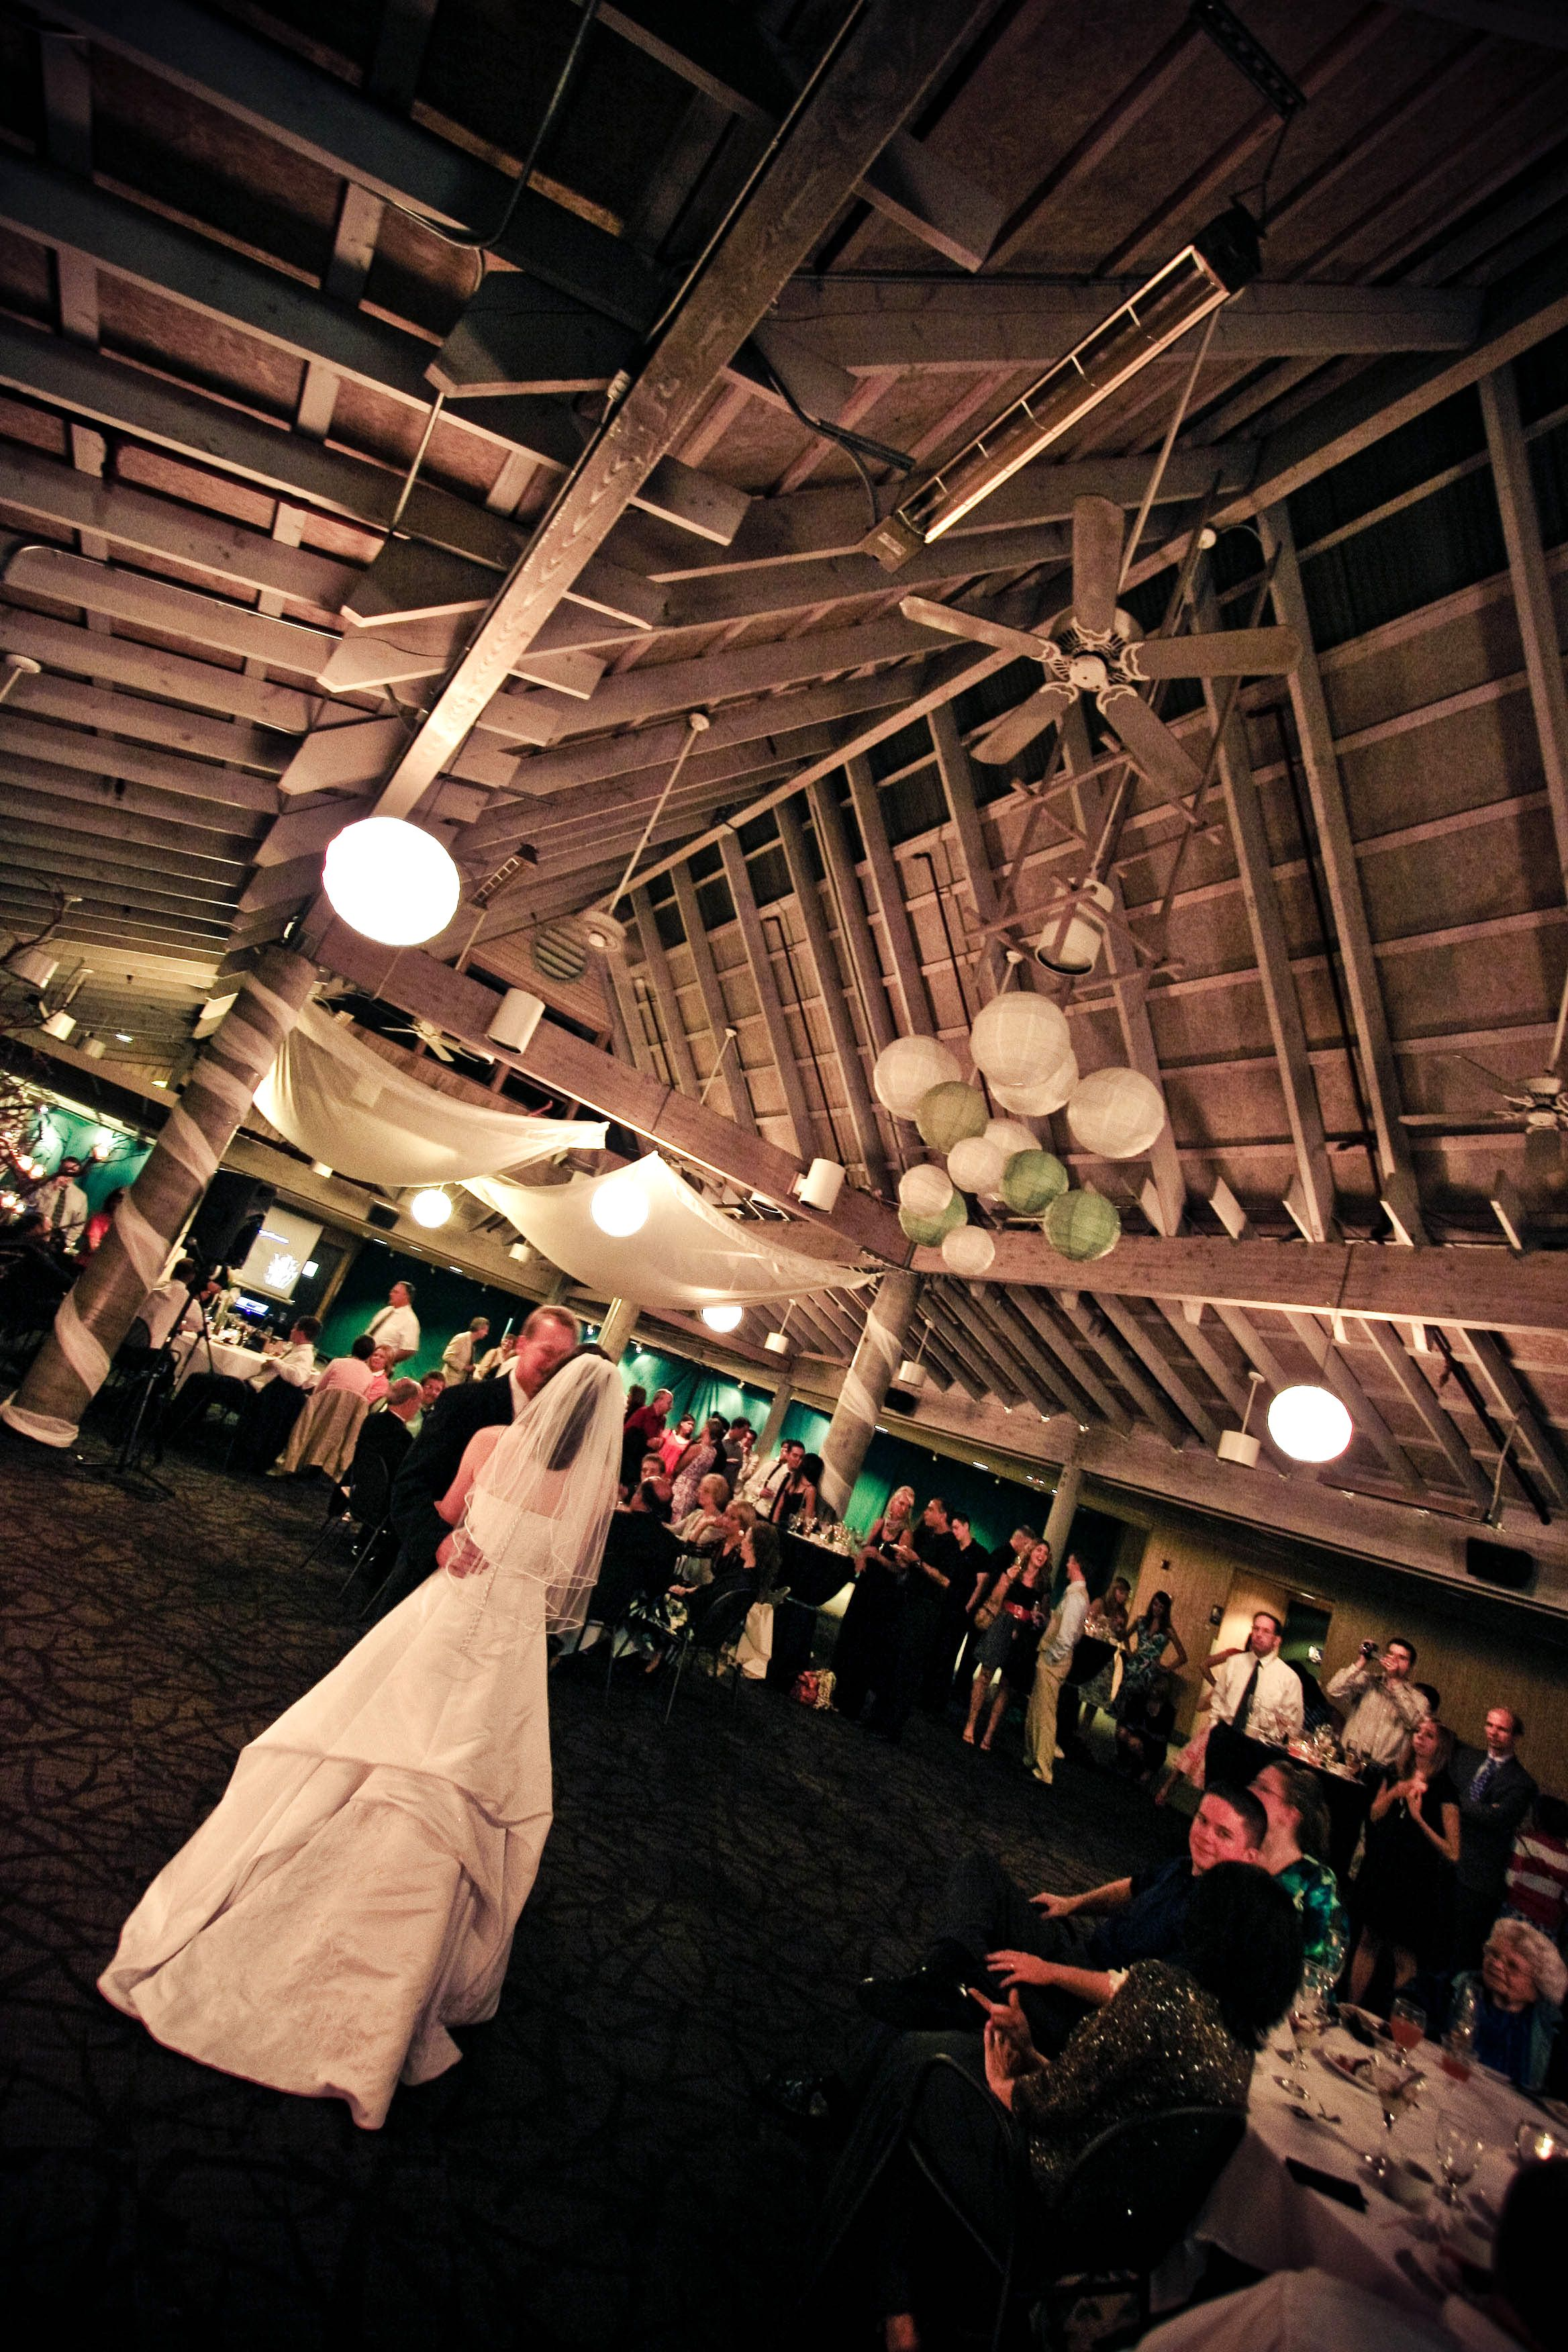 Food Court By Day Transformed To An Amazing Venue By Night The Rain Forest Food Pavilion Is The Perfect Indoor Zoo Wedding Woodland Park Zoo Seattle Wedding